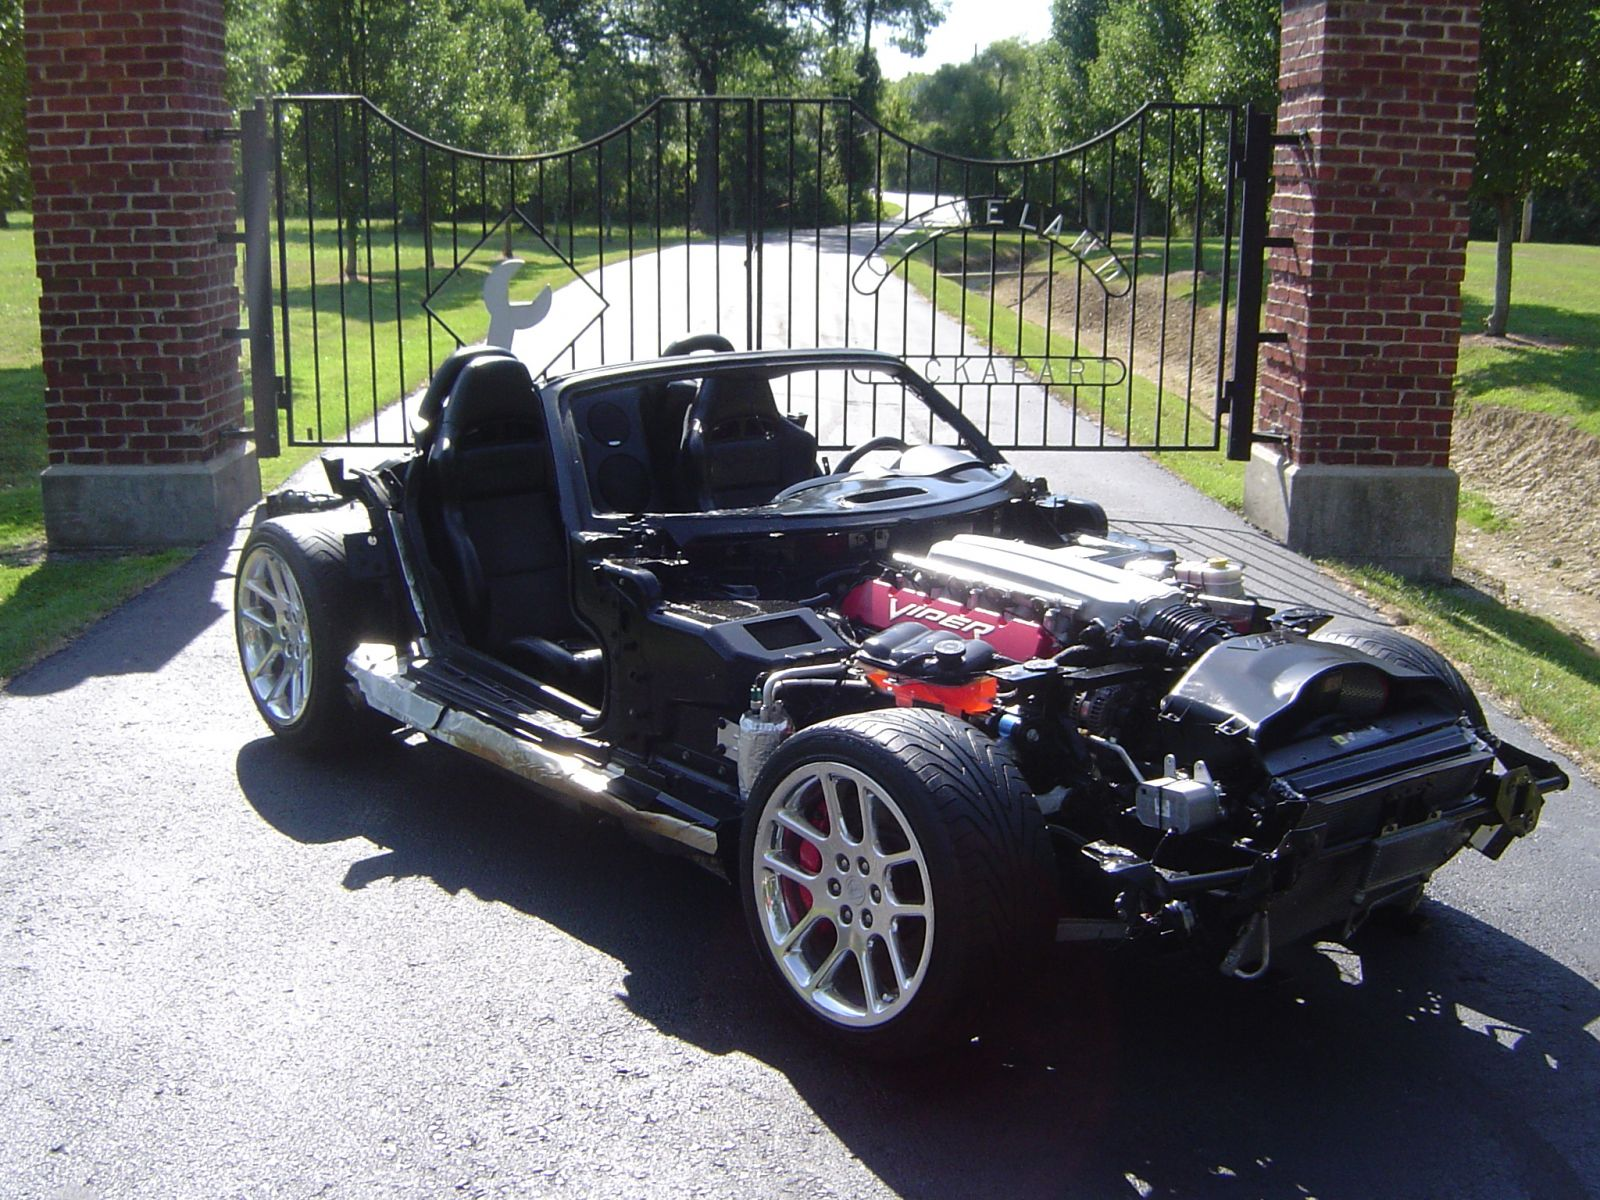 Dyno Testing Go Karts Builders and Donor Vehicles Cleveland